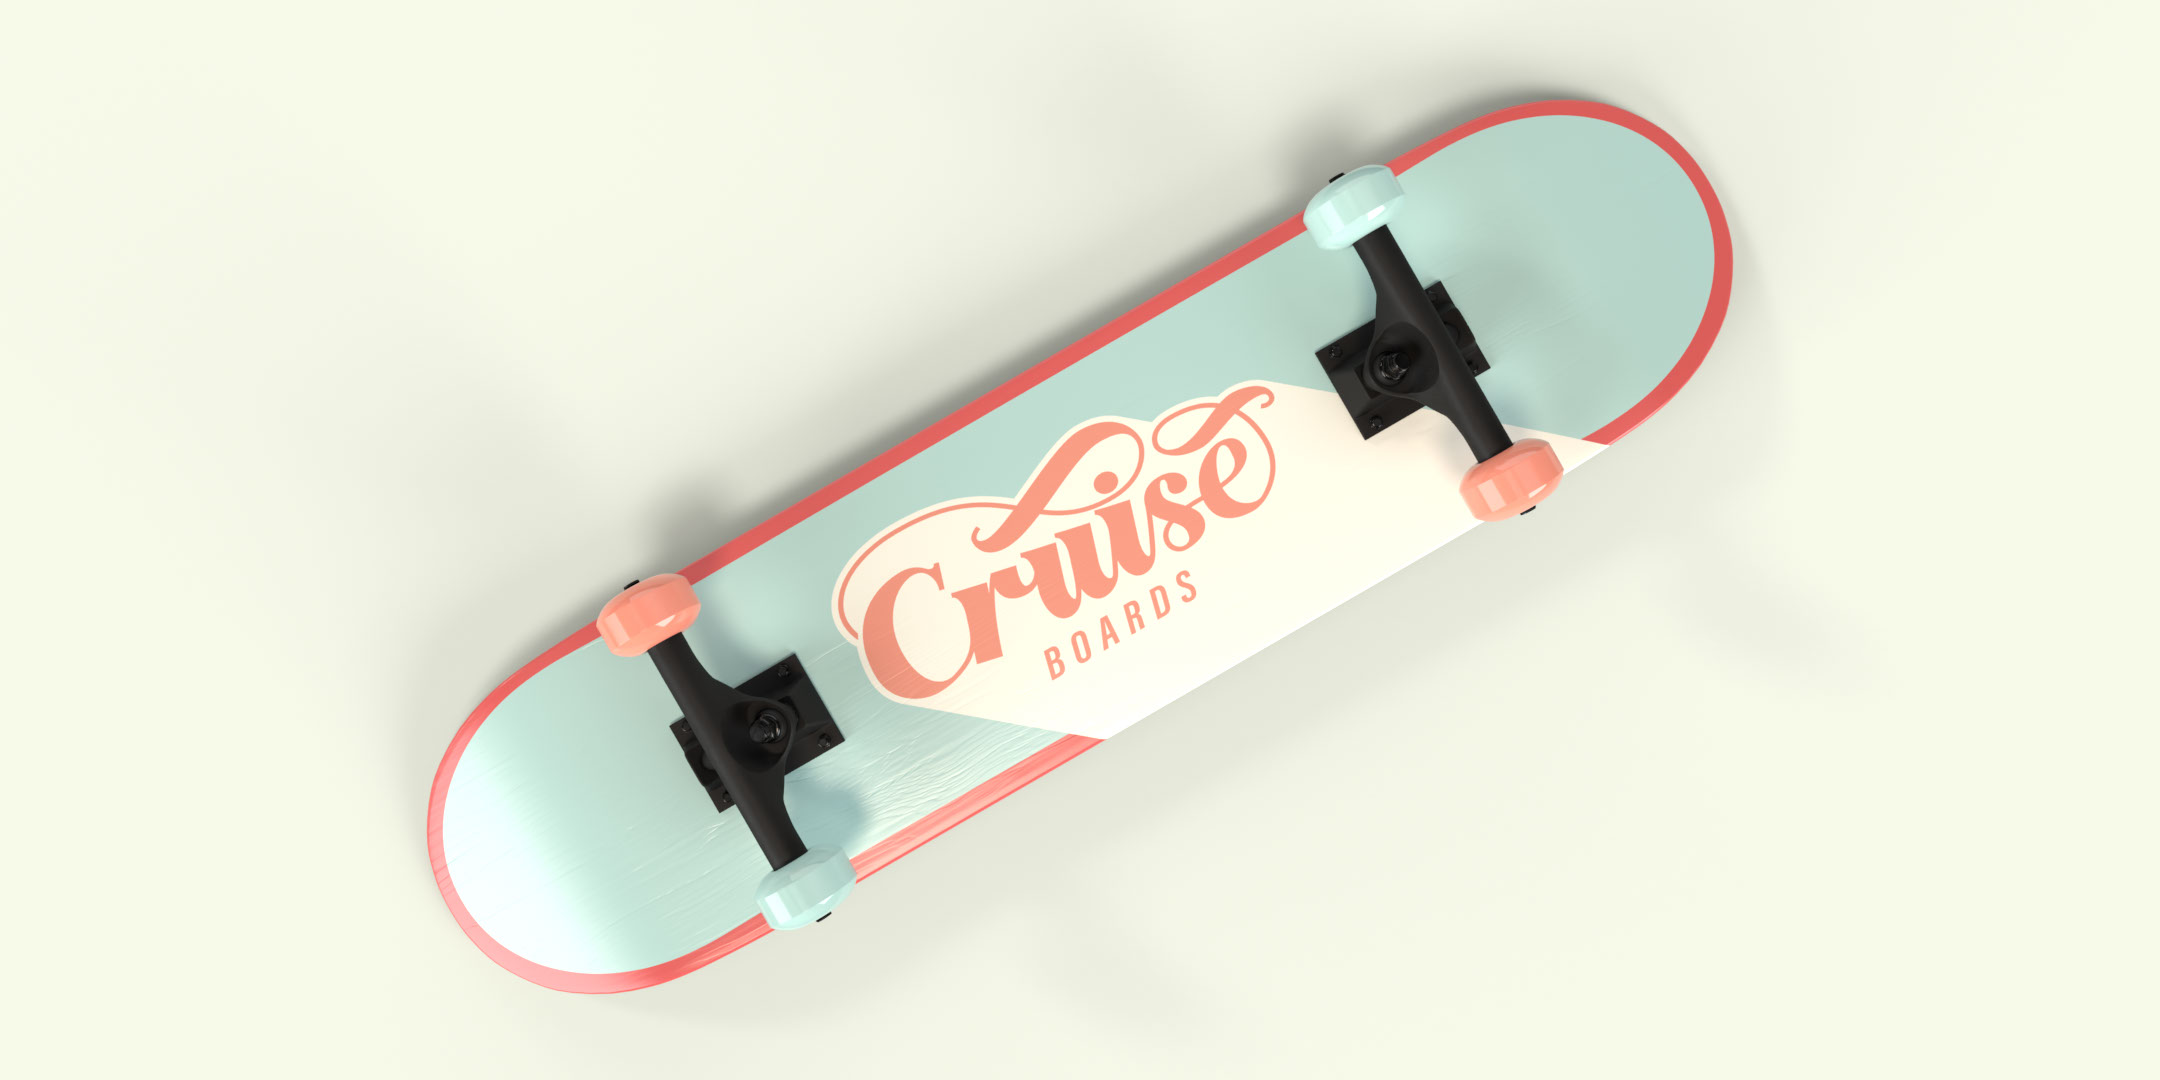 Cruise Boards skateboard graphic viewed from top down